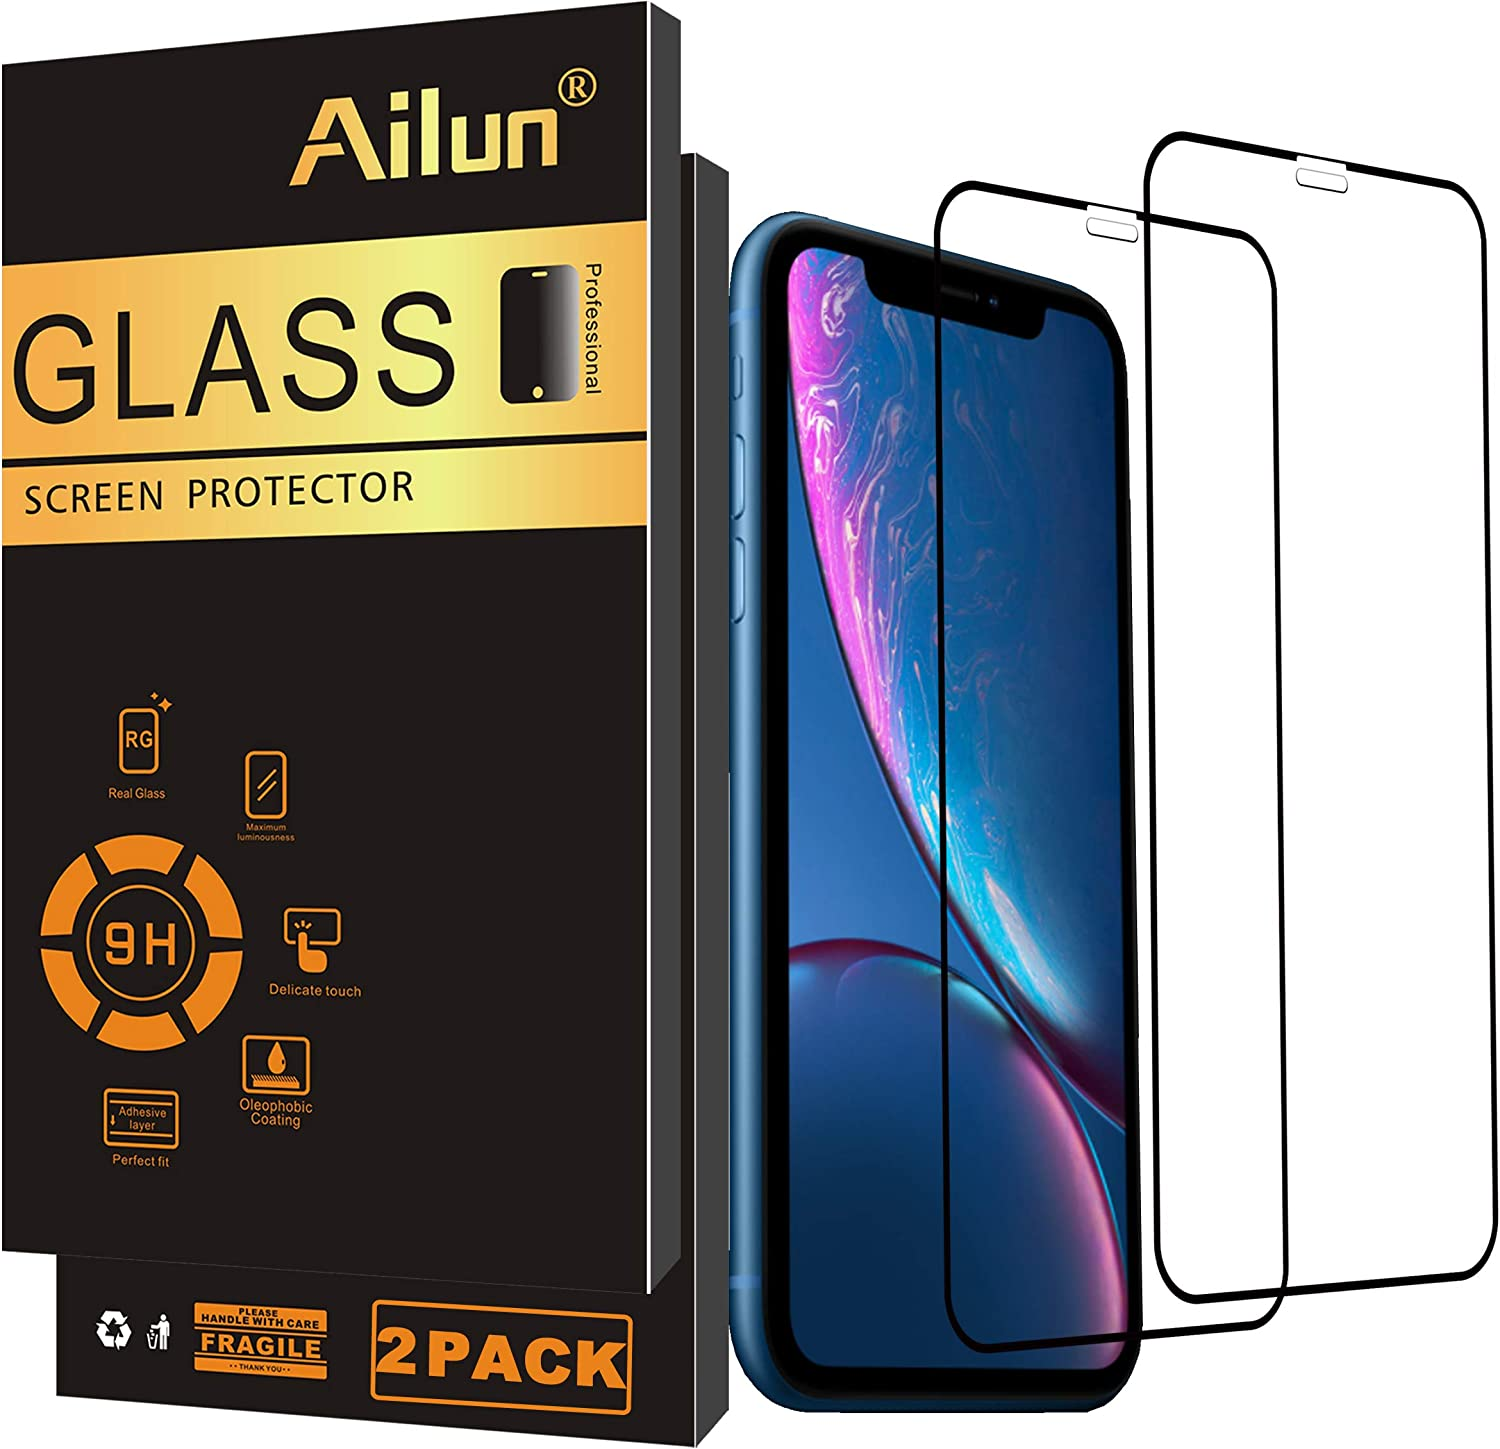 Ailun Screen Protector Compatible for iPhone 11/XR 6.1Inch 2019/2018 Release 2Pack Tempered Glass Full Notch Coverage